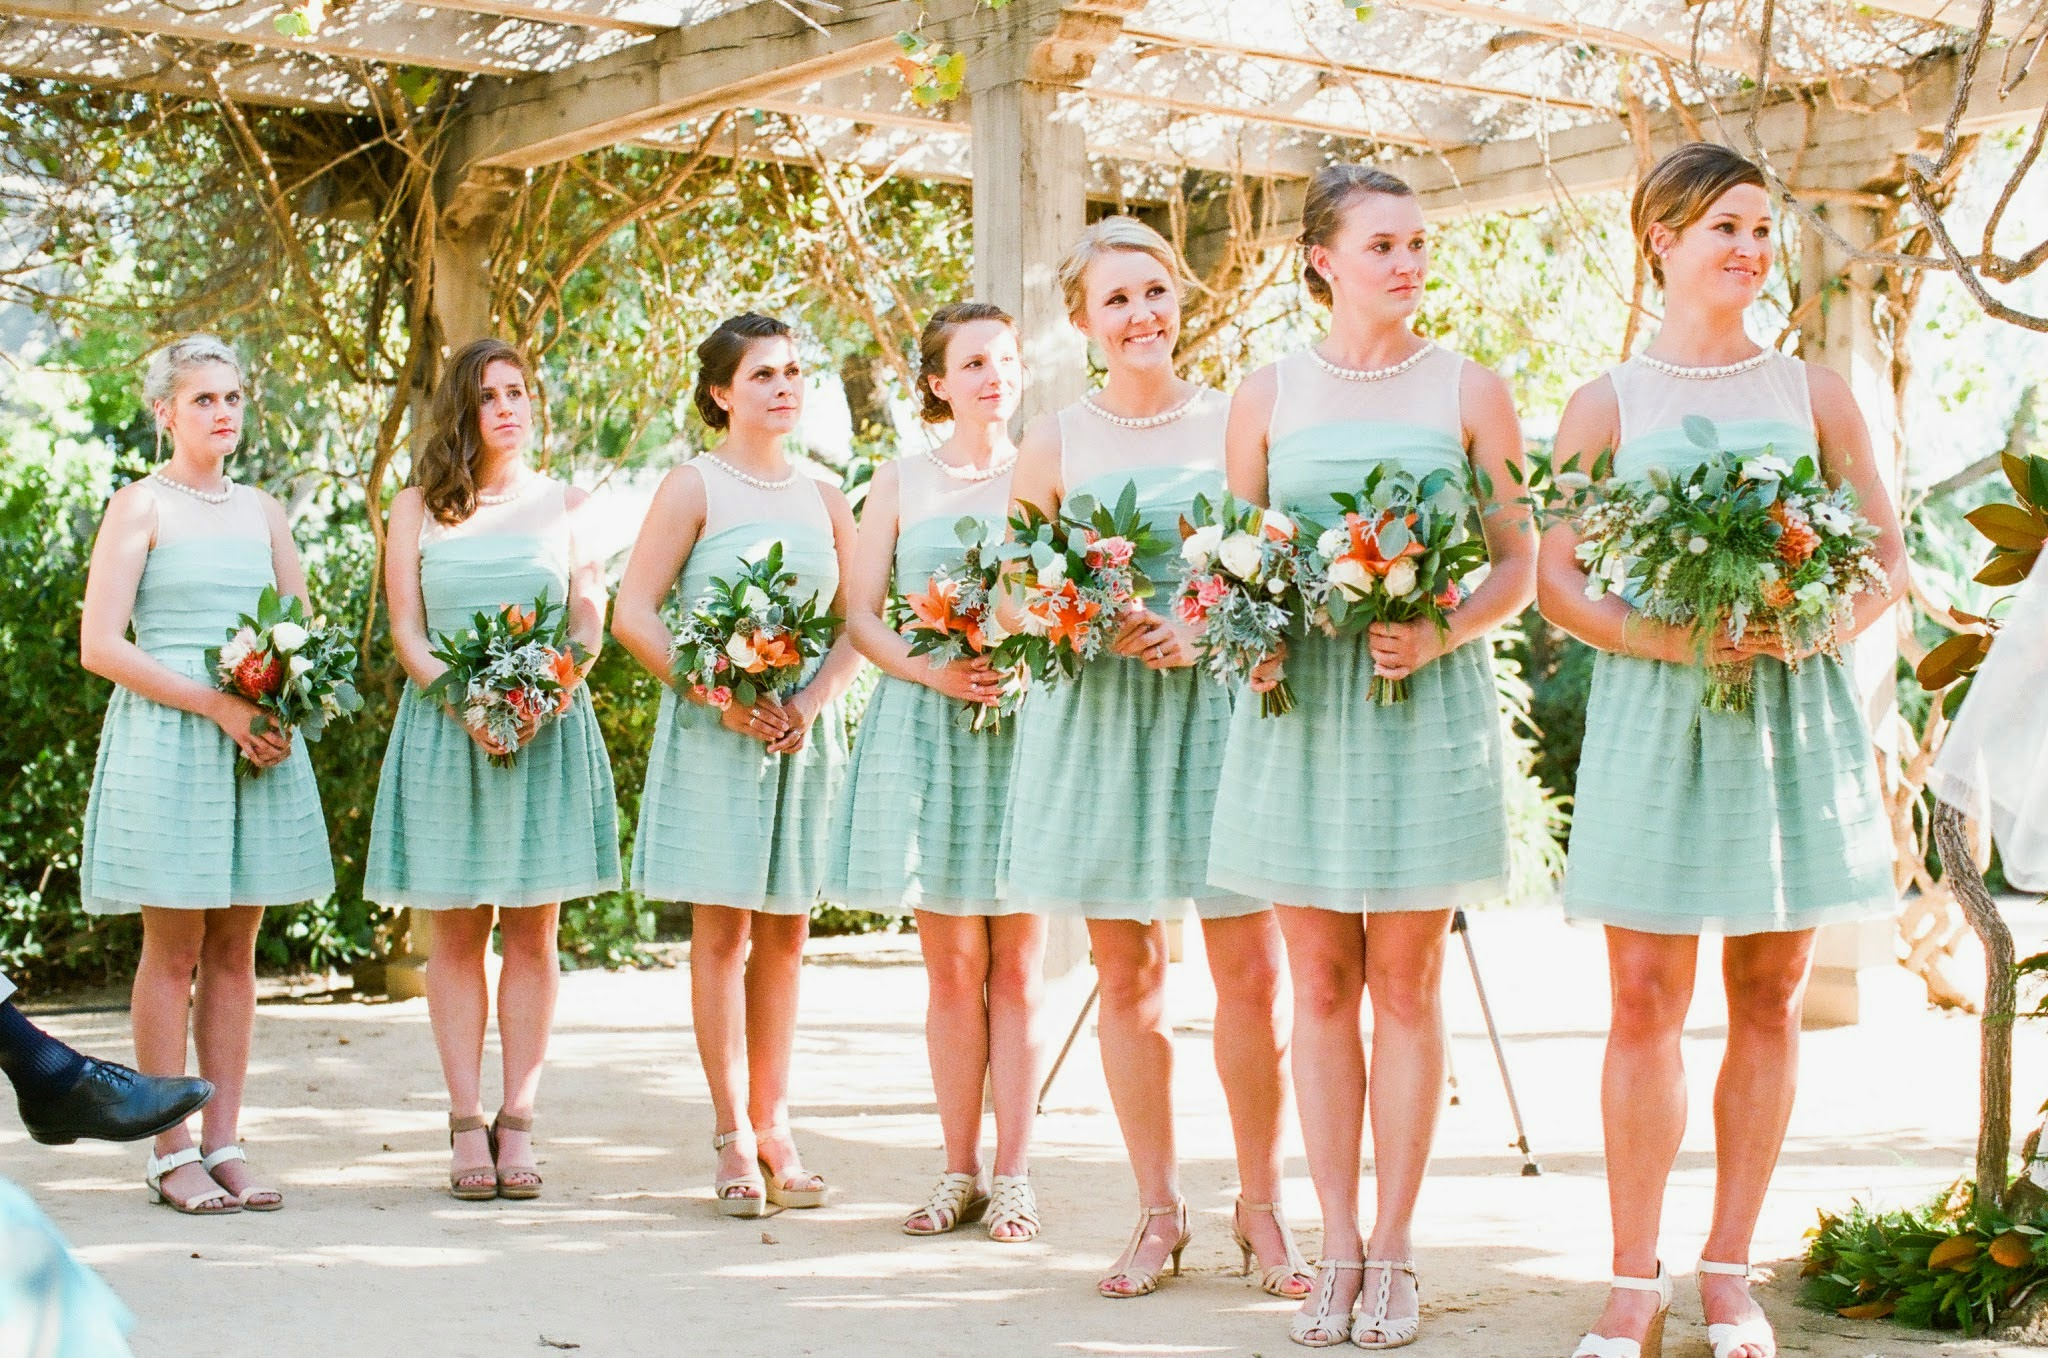 www.felicievents.com | Felici Events | Historical Museum Wedding | Eclectic Orange Wedding | Bridesmaid Dresses Teal